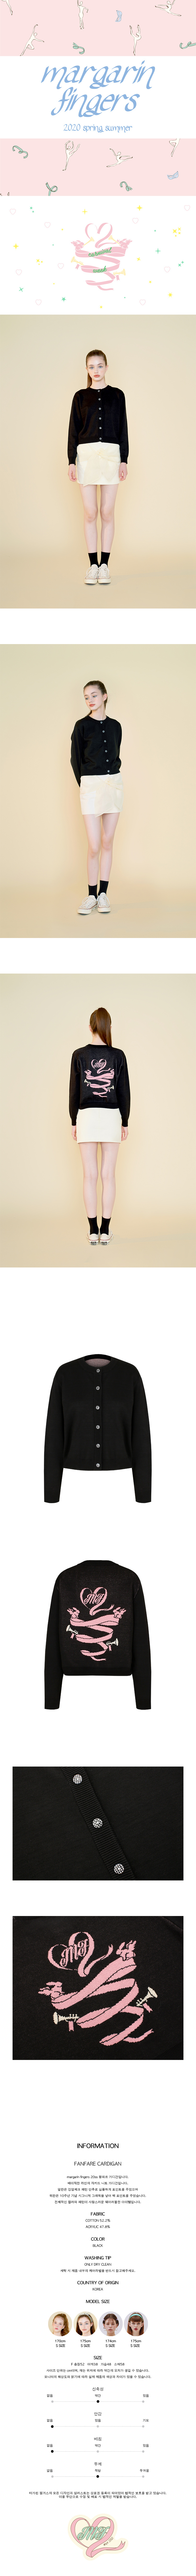 마가린핑거스(MARGARIN FINGERS) fanfare cardigan (black)